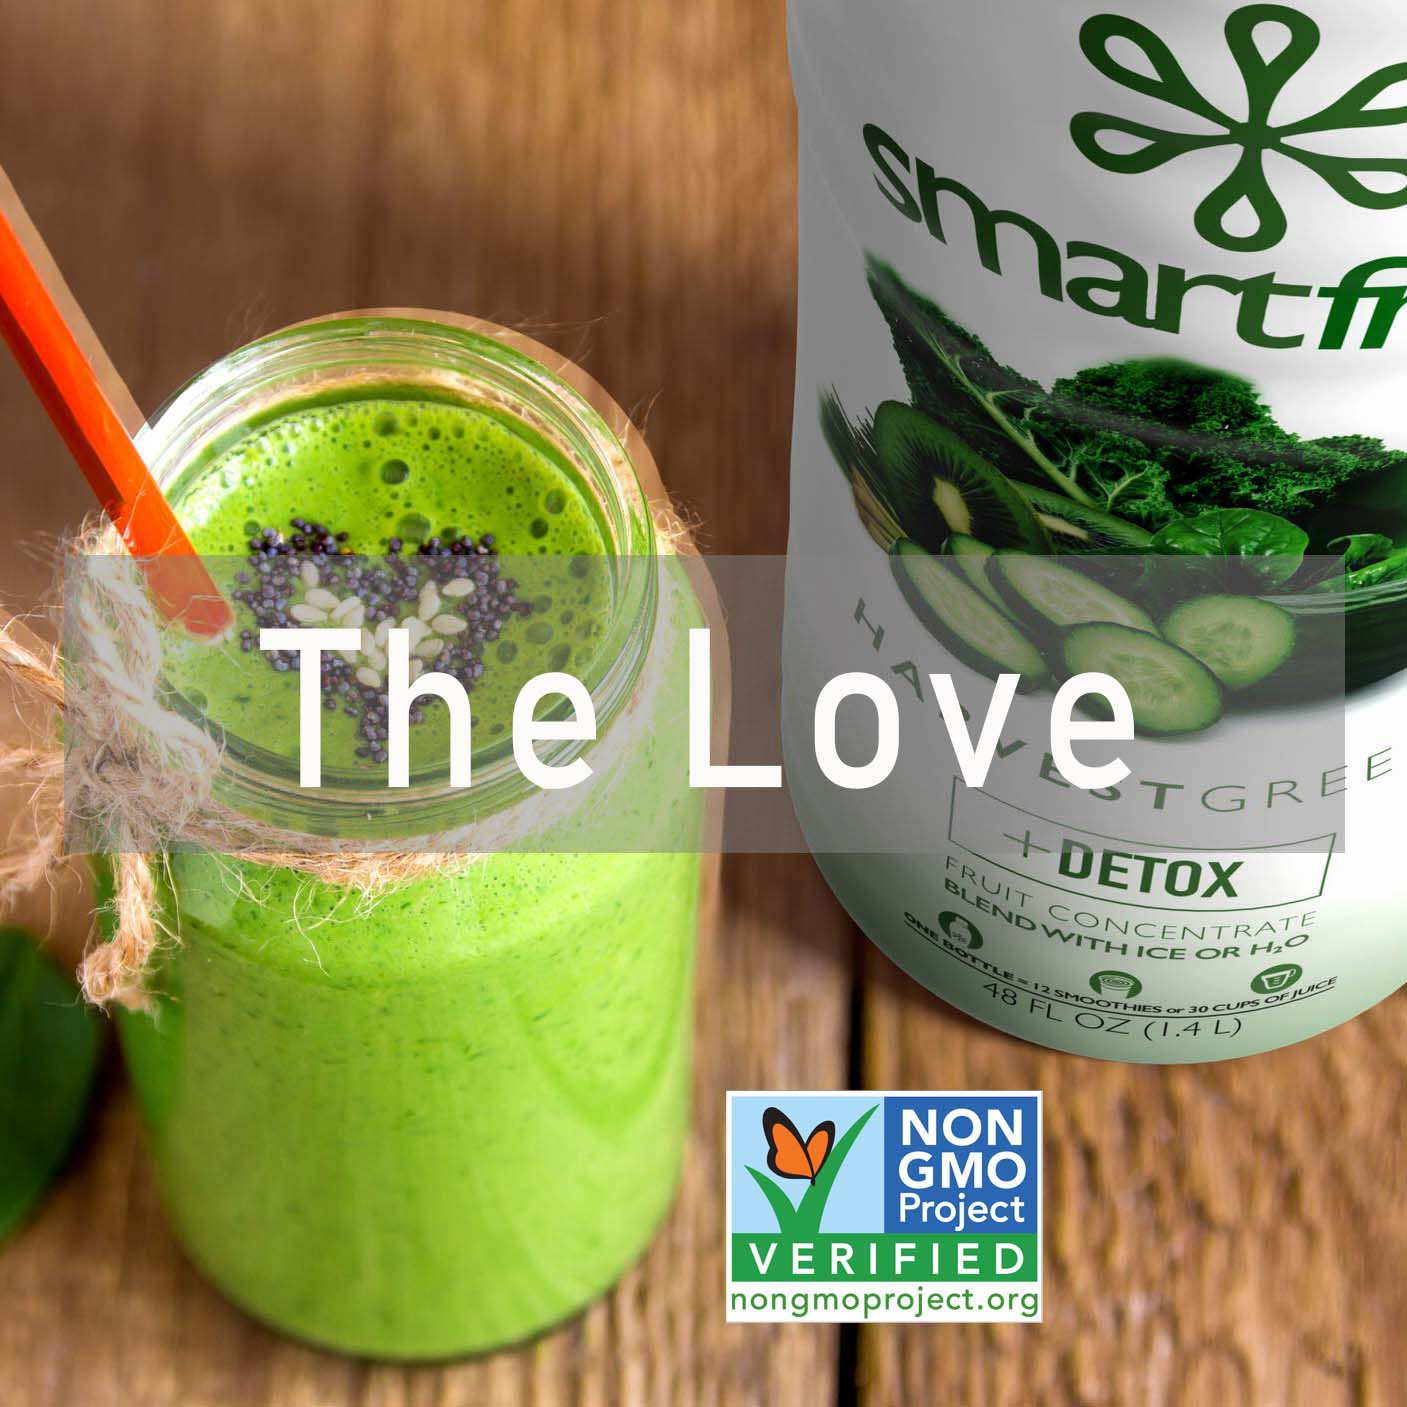 premium food + beverages products - Web - the love - titled